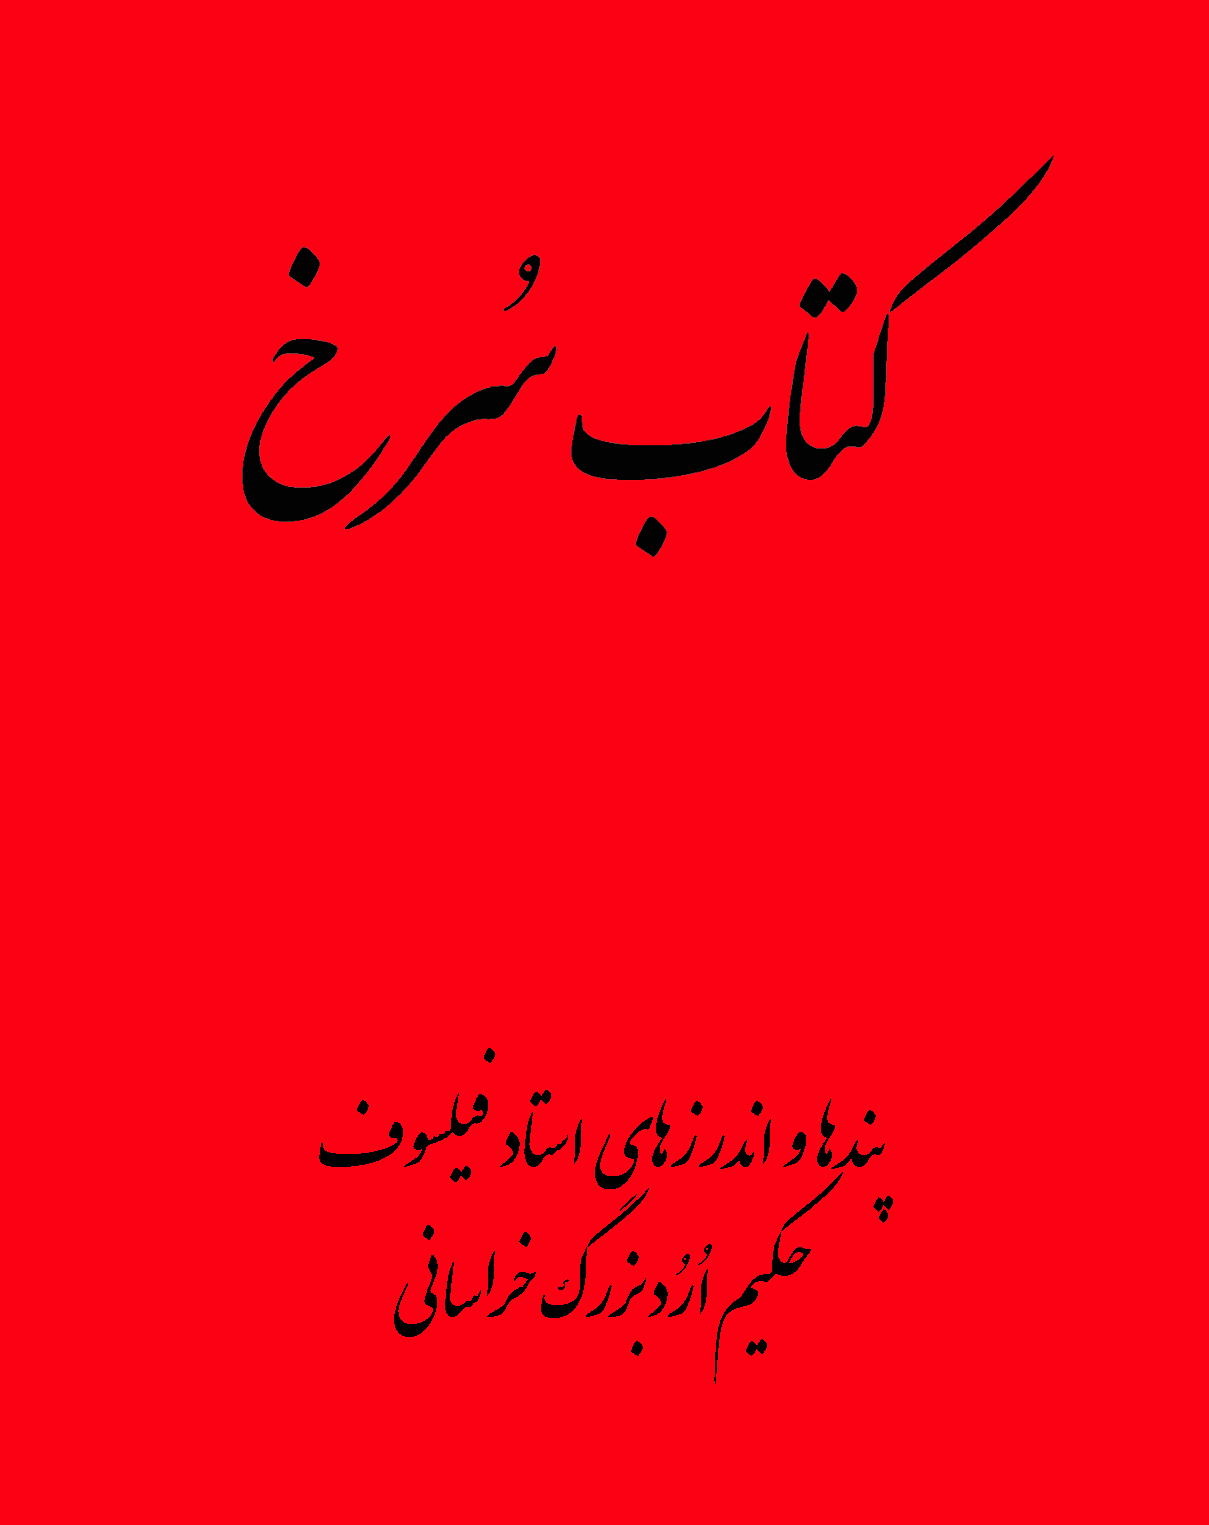 http://s9.picofile.com/file/8305839000/red_book_hakim_great_orod.jpg